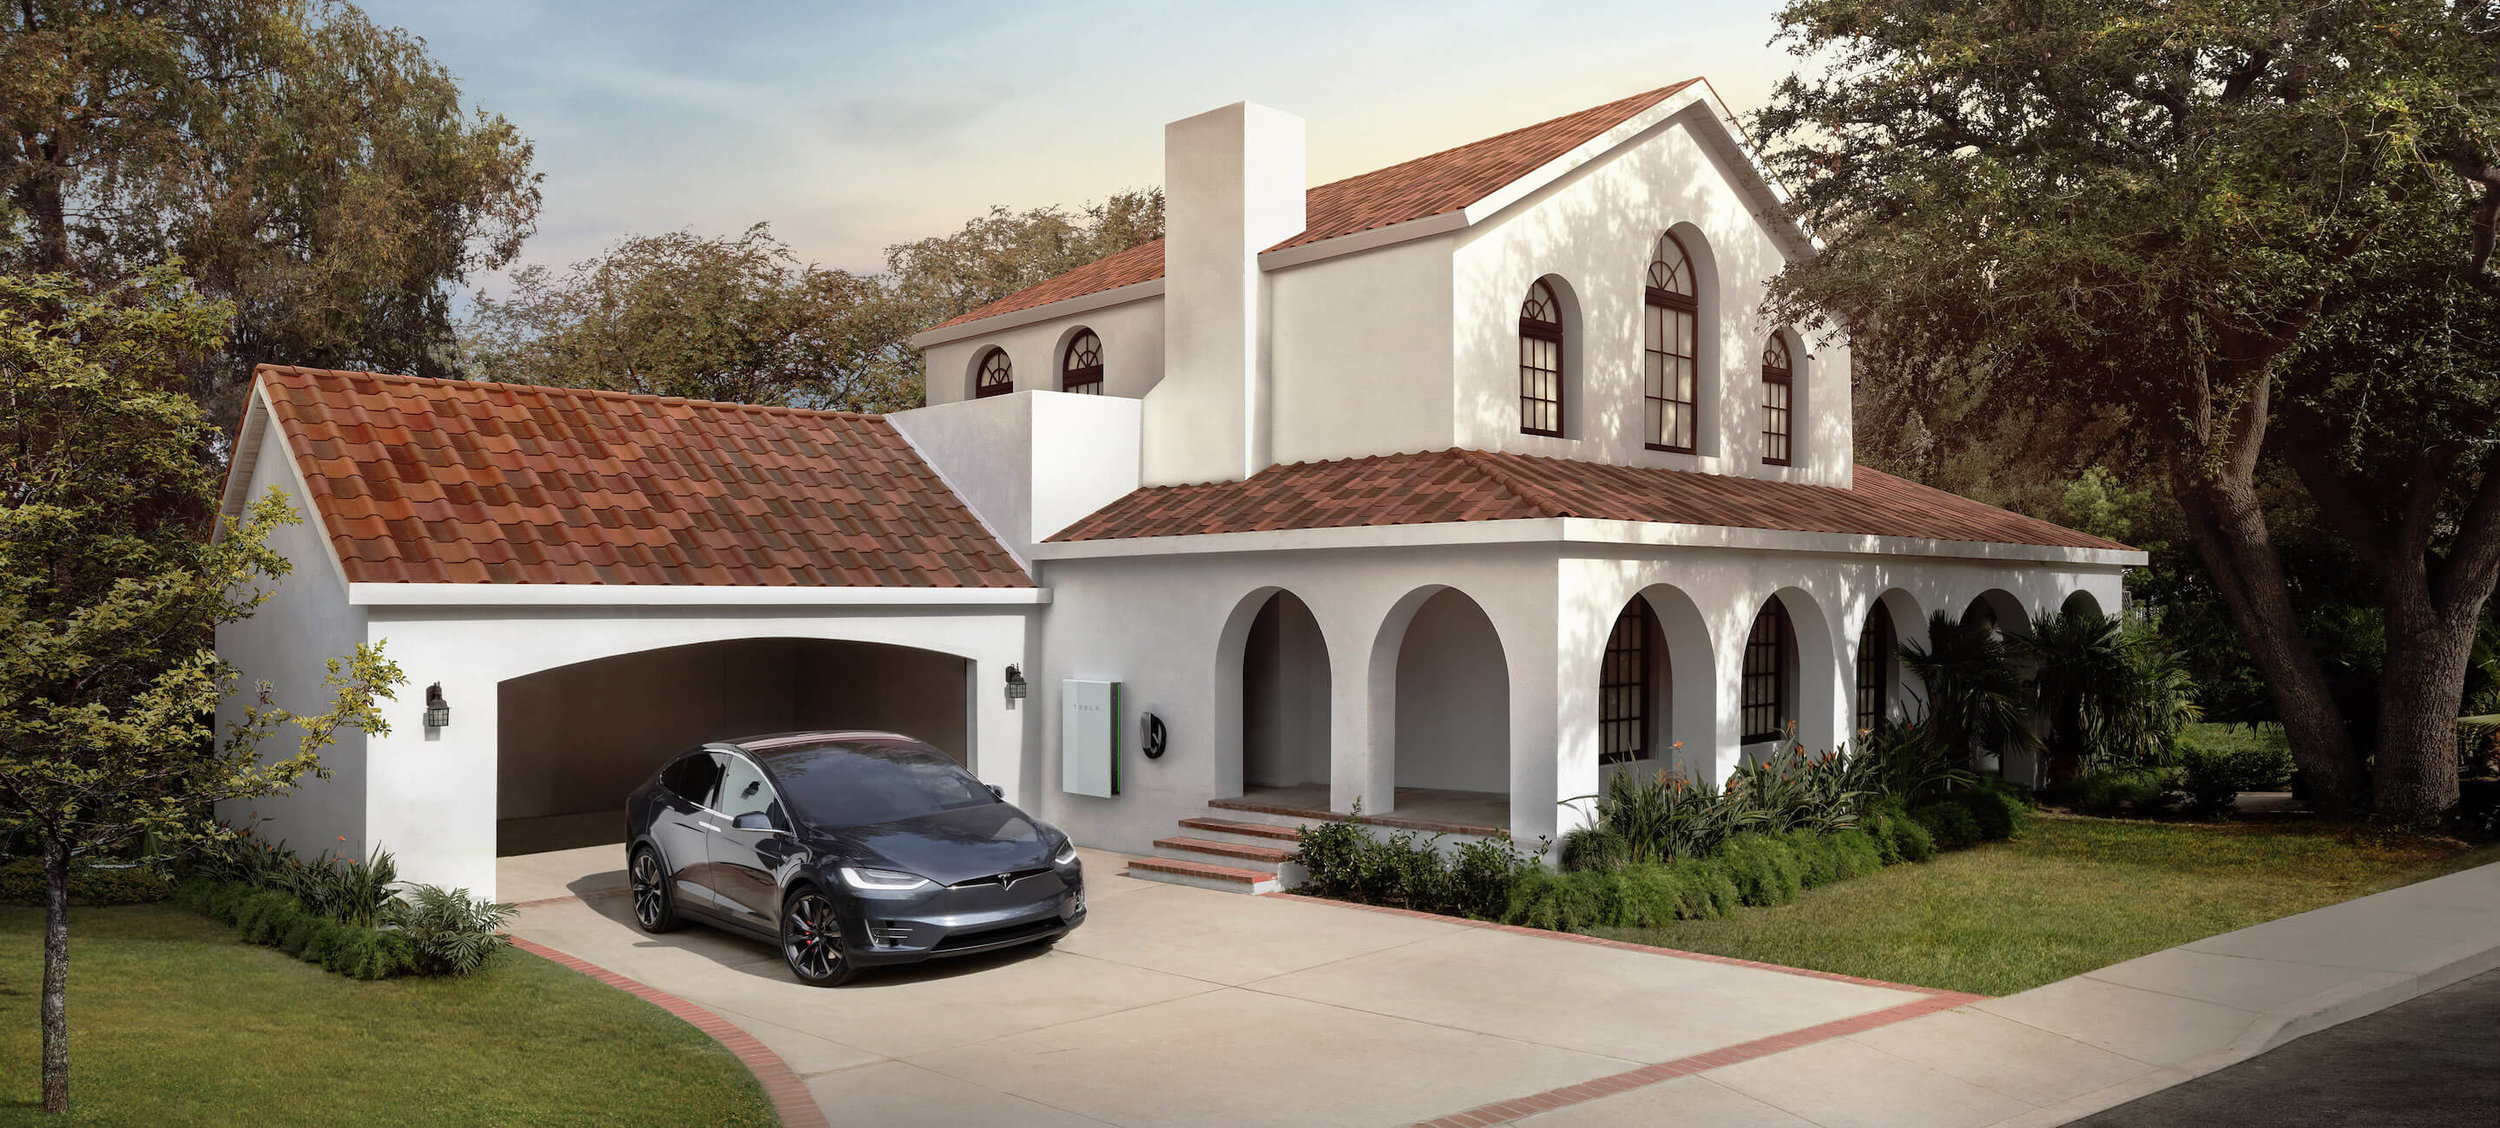 Solar panels are ugly is no longer an excuse! Elon Musk and Tesla are bringing sexy back to solar energy. And yes...that's a solar roof on this house!